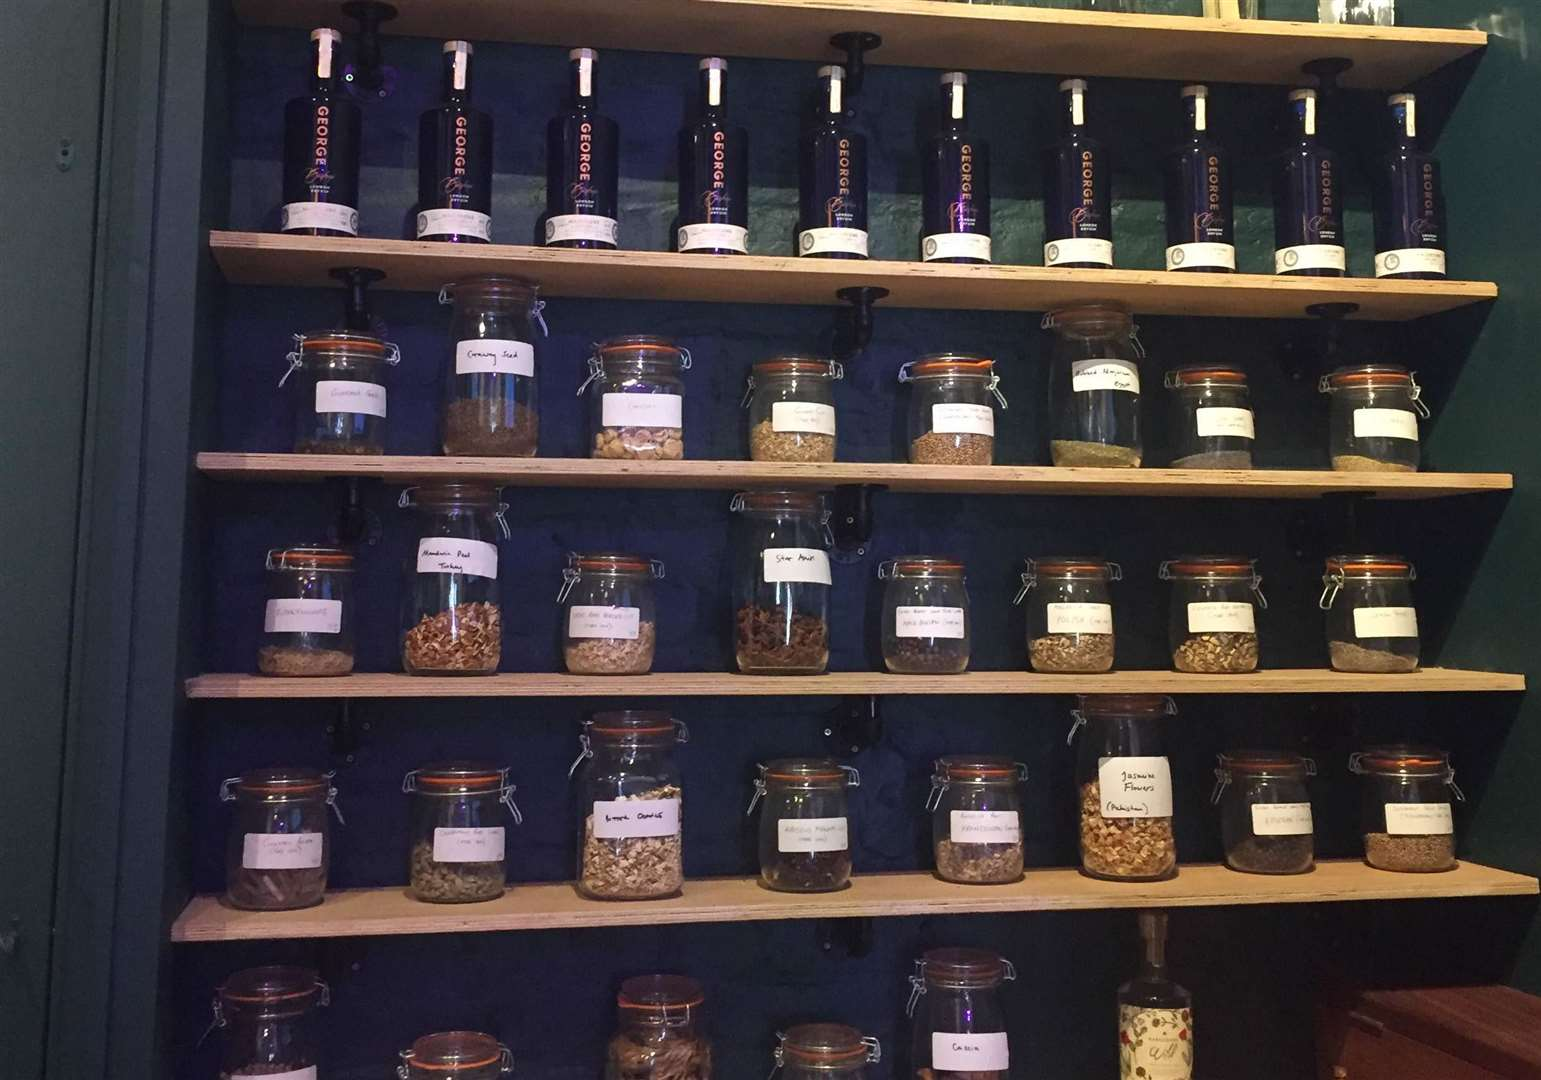 Jars of botanicals line the shelves in the experience room